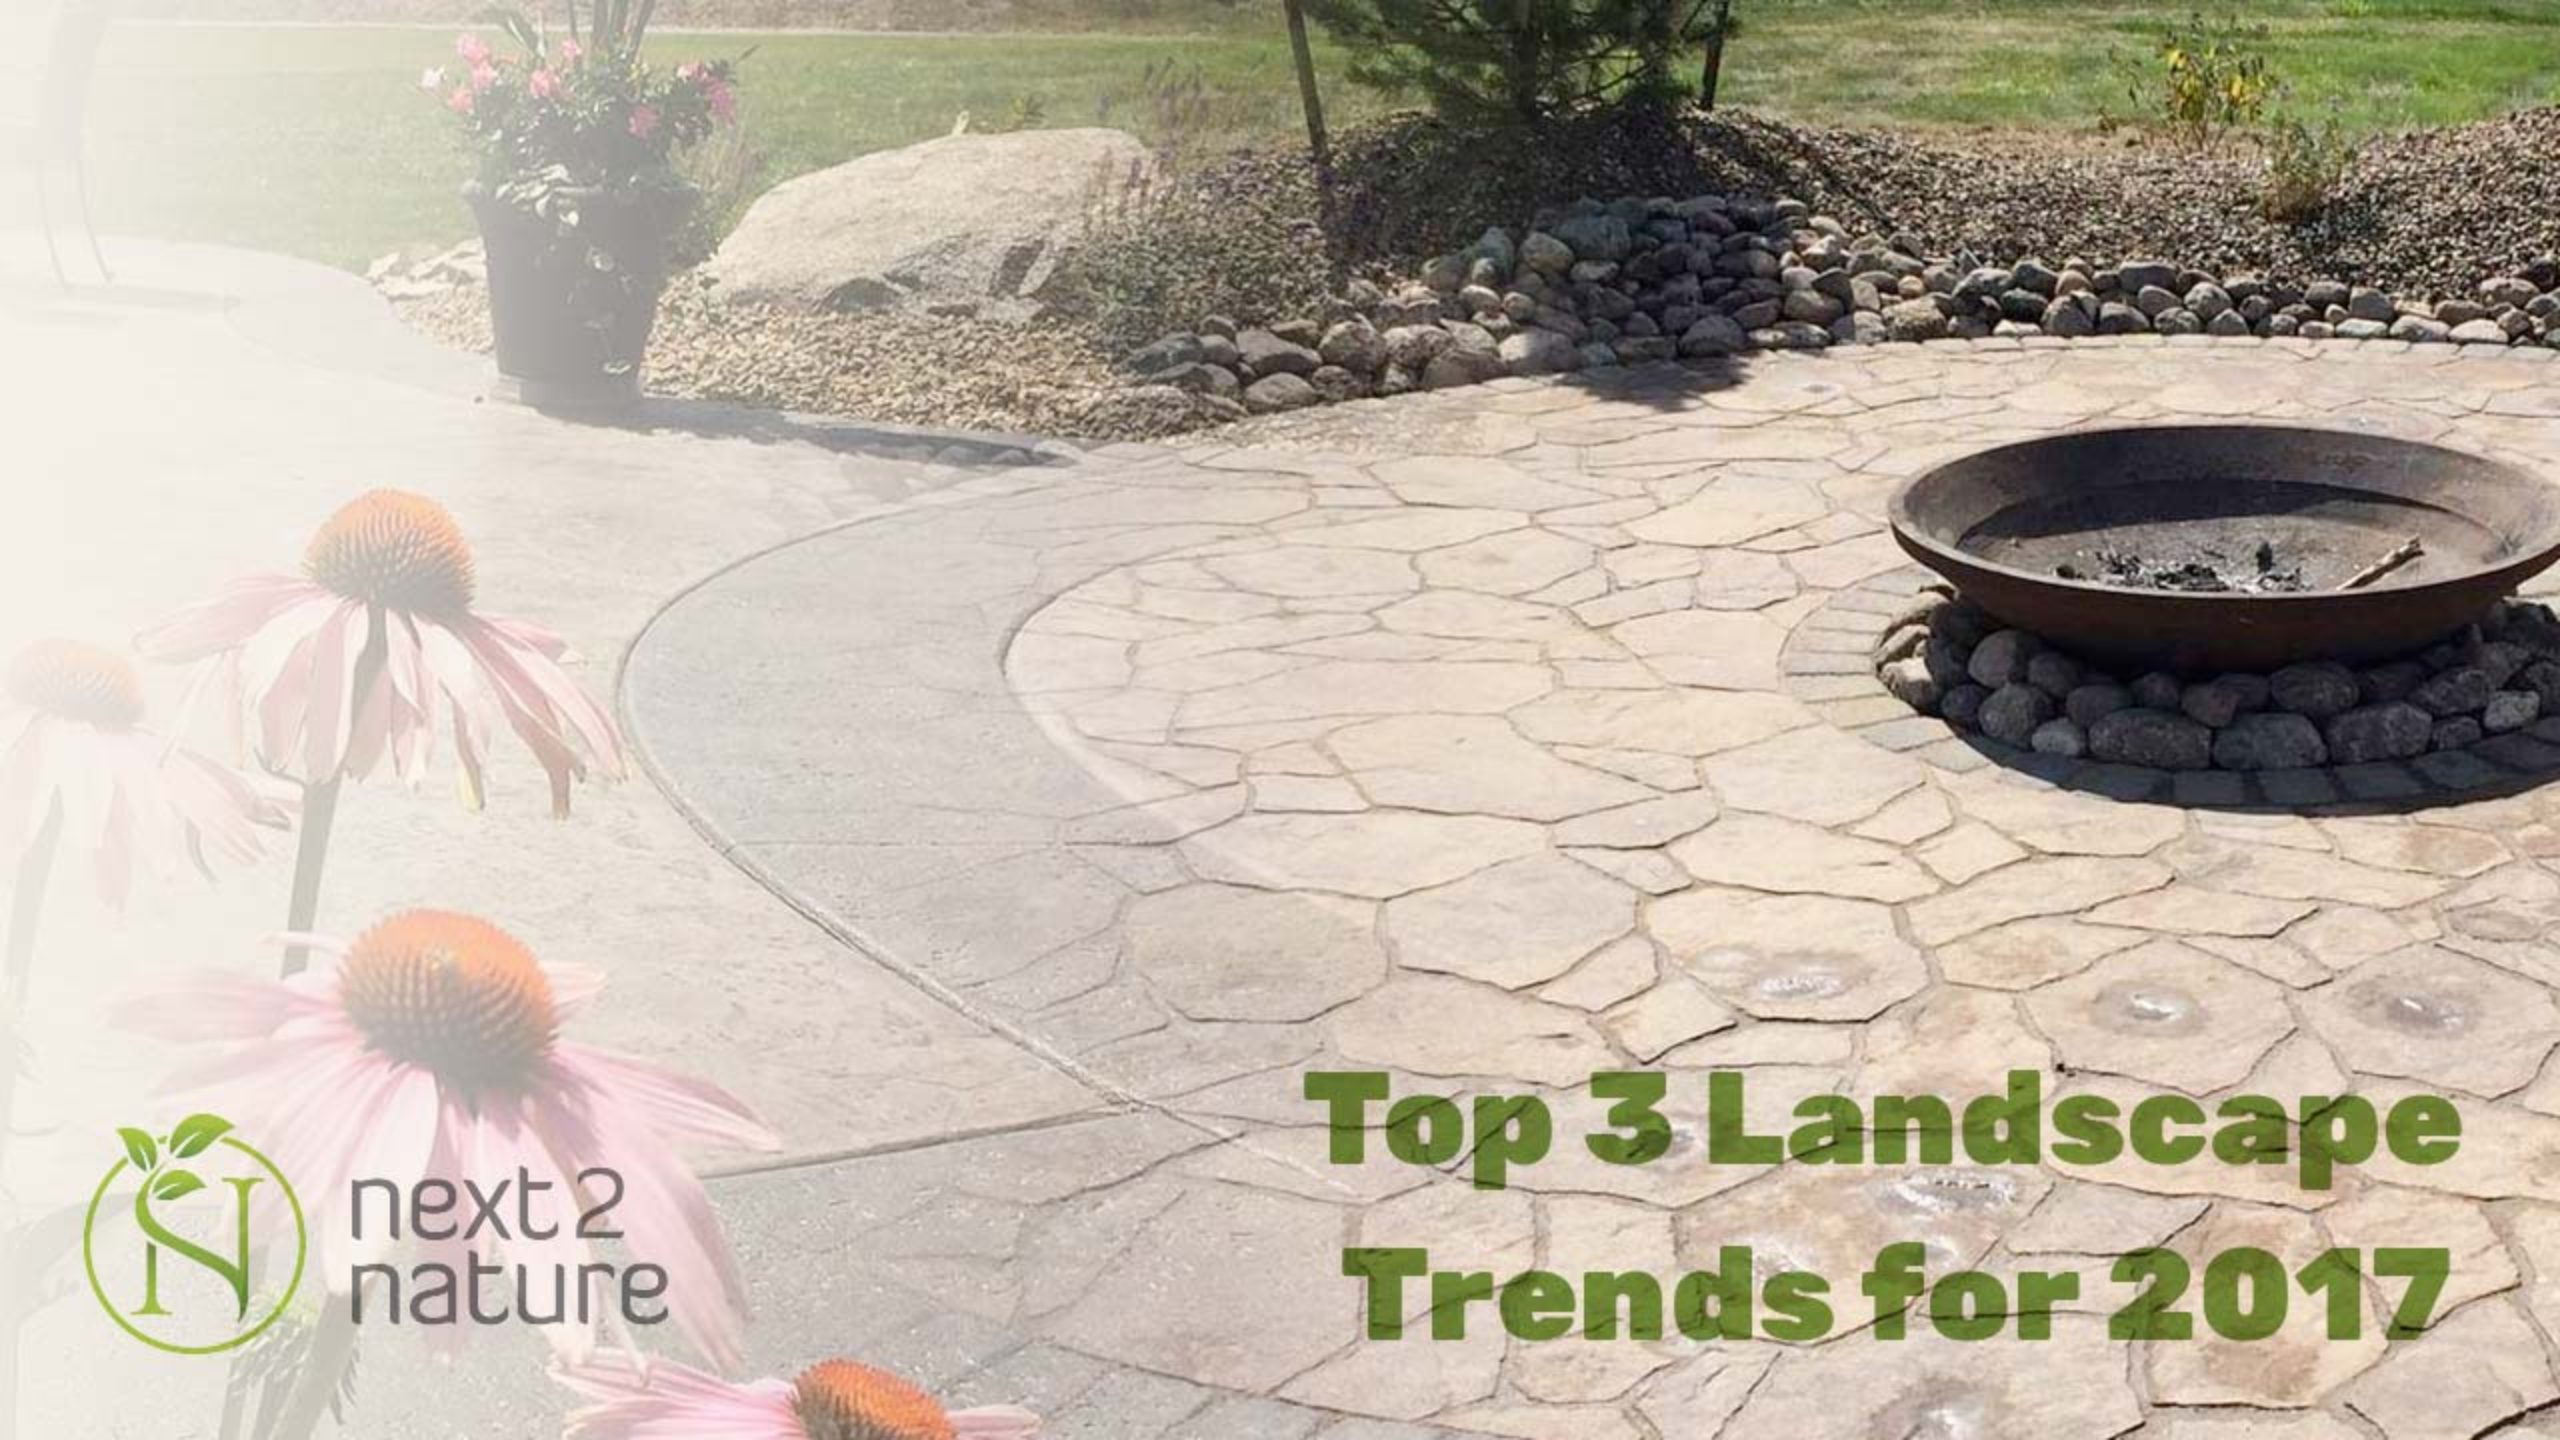 Top 3 Landscape Trends for 2017